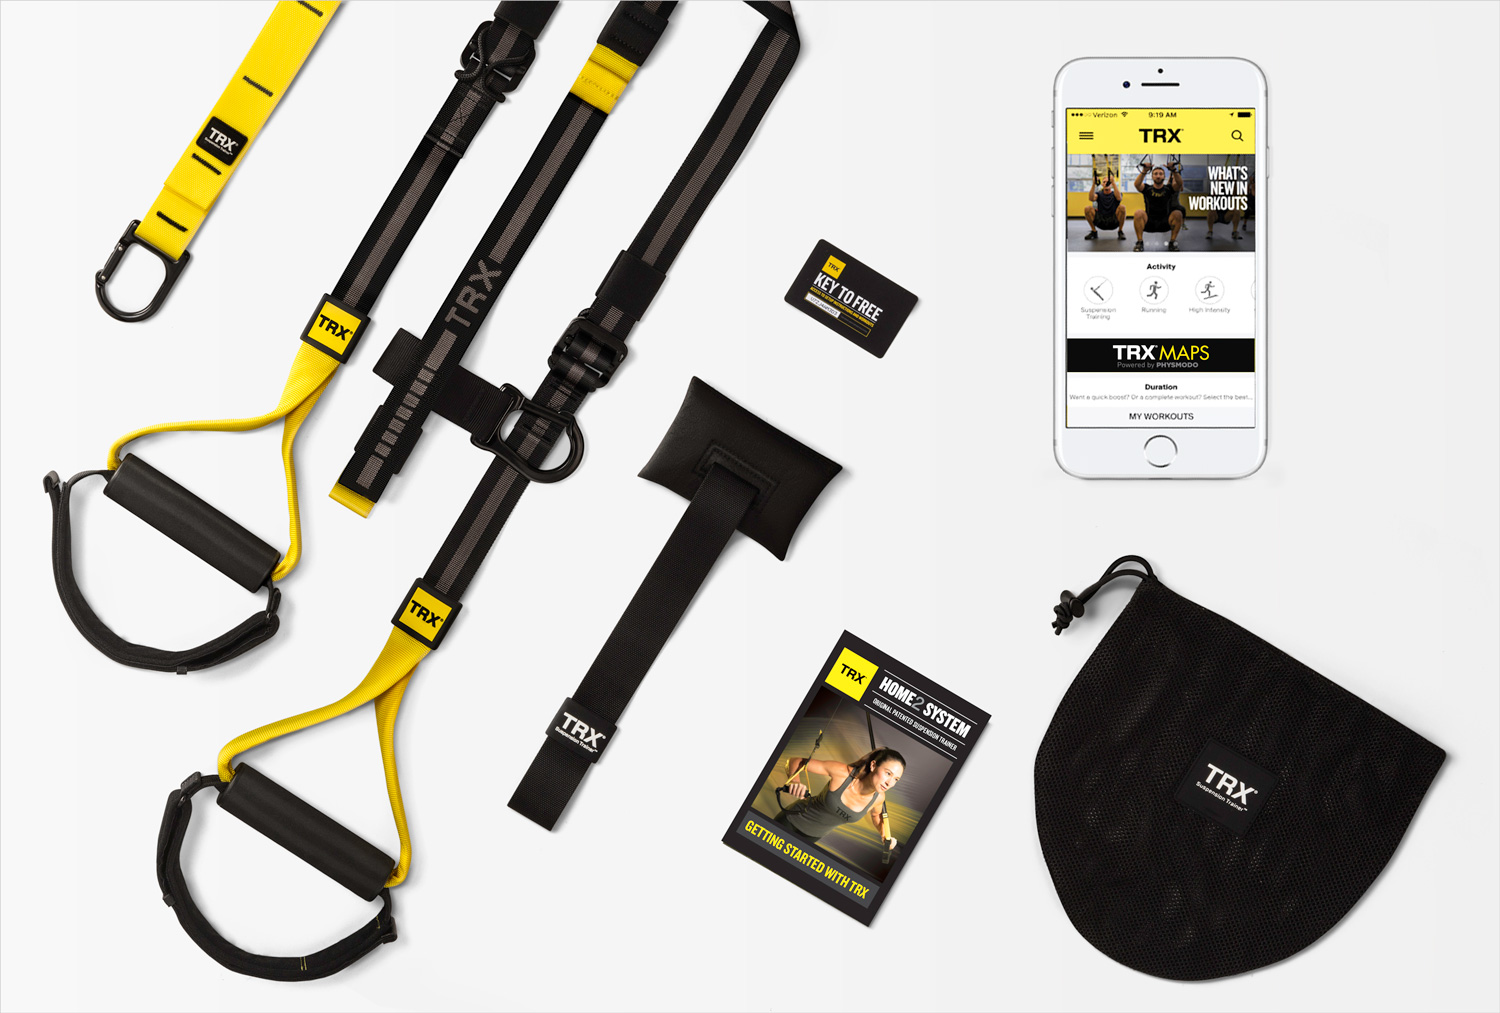 TRX home 2 system training app exercise equipment